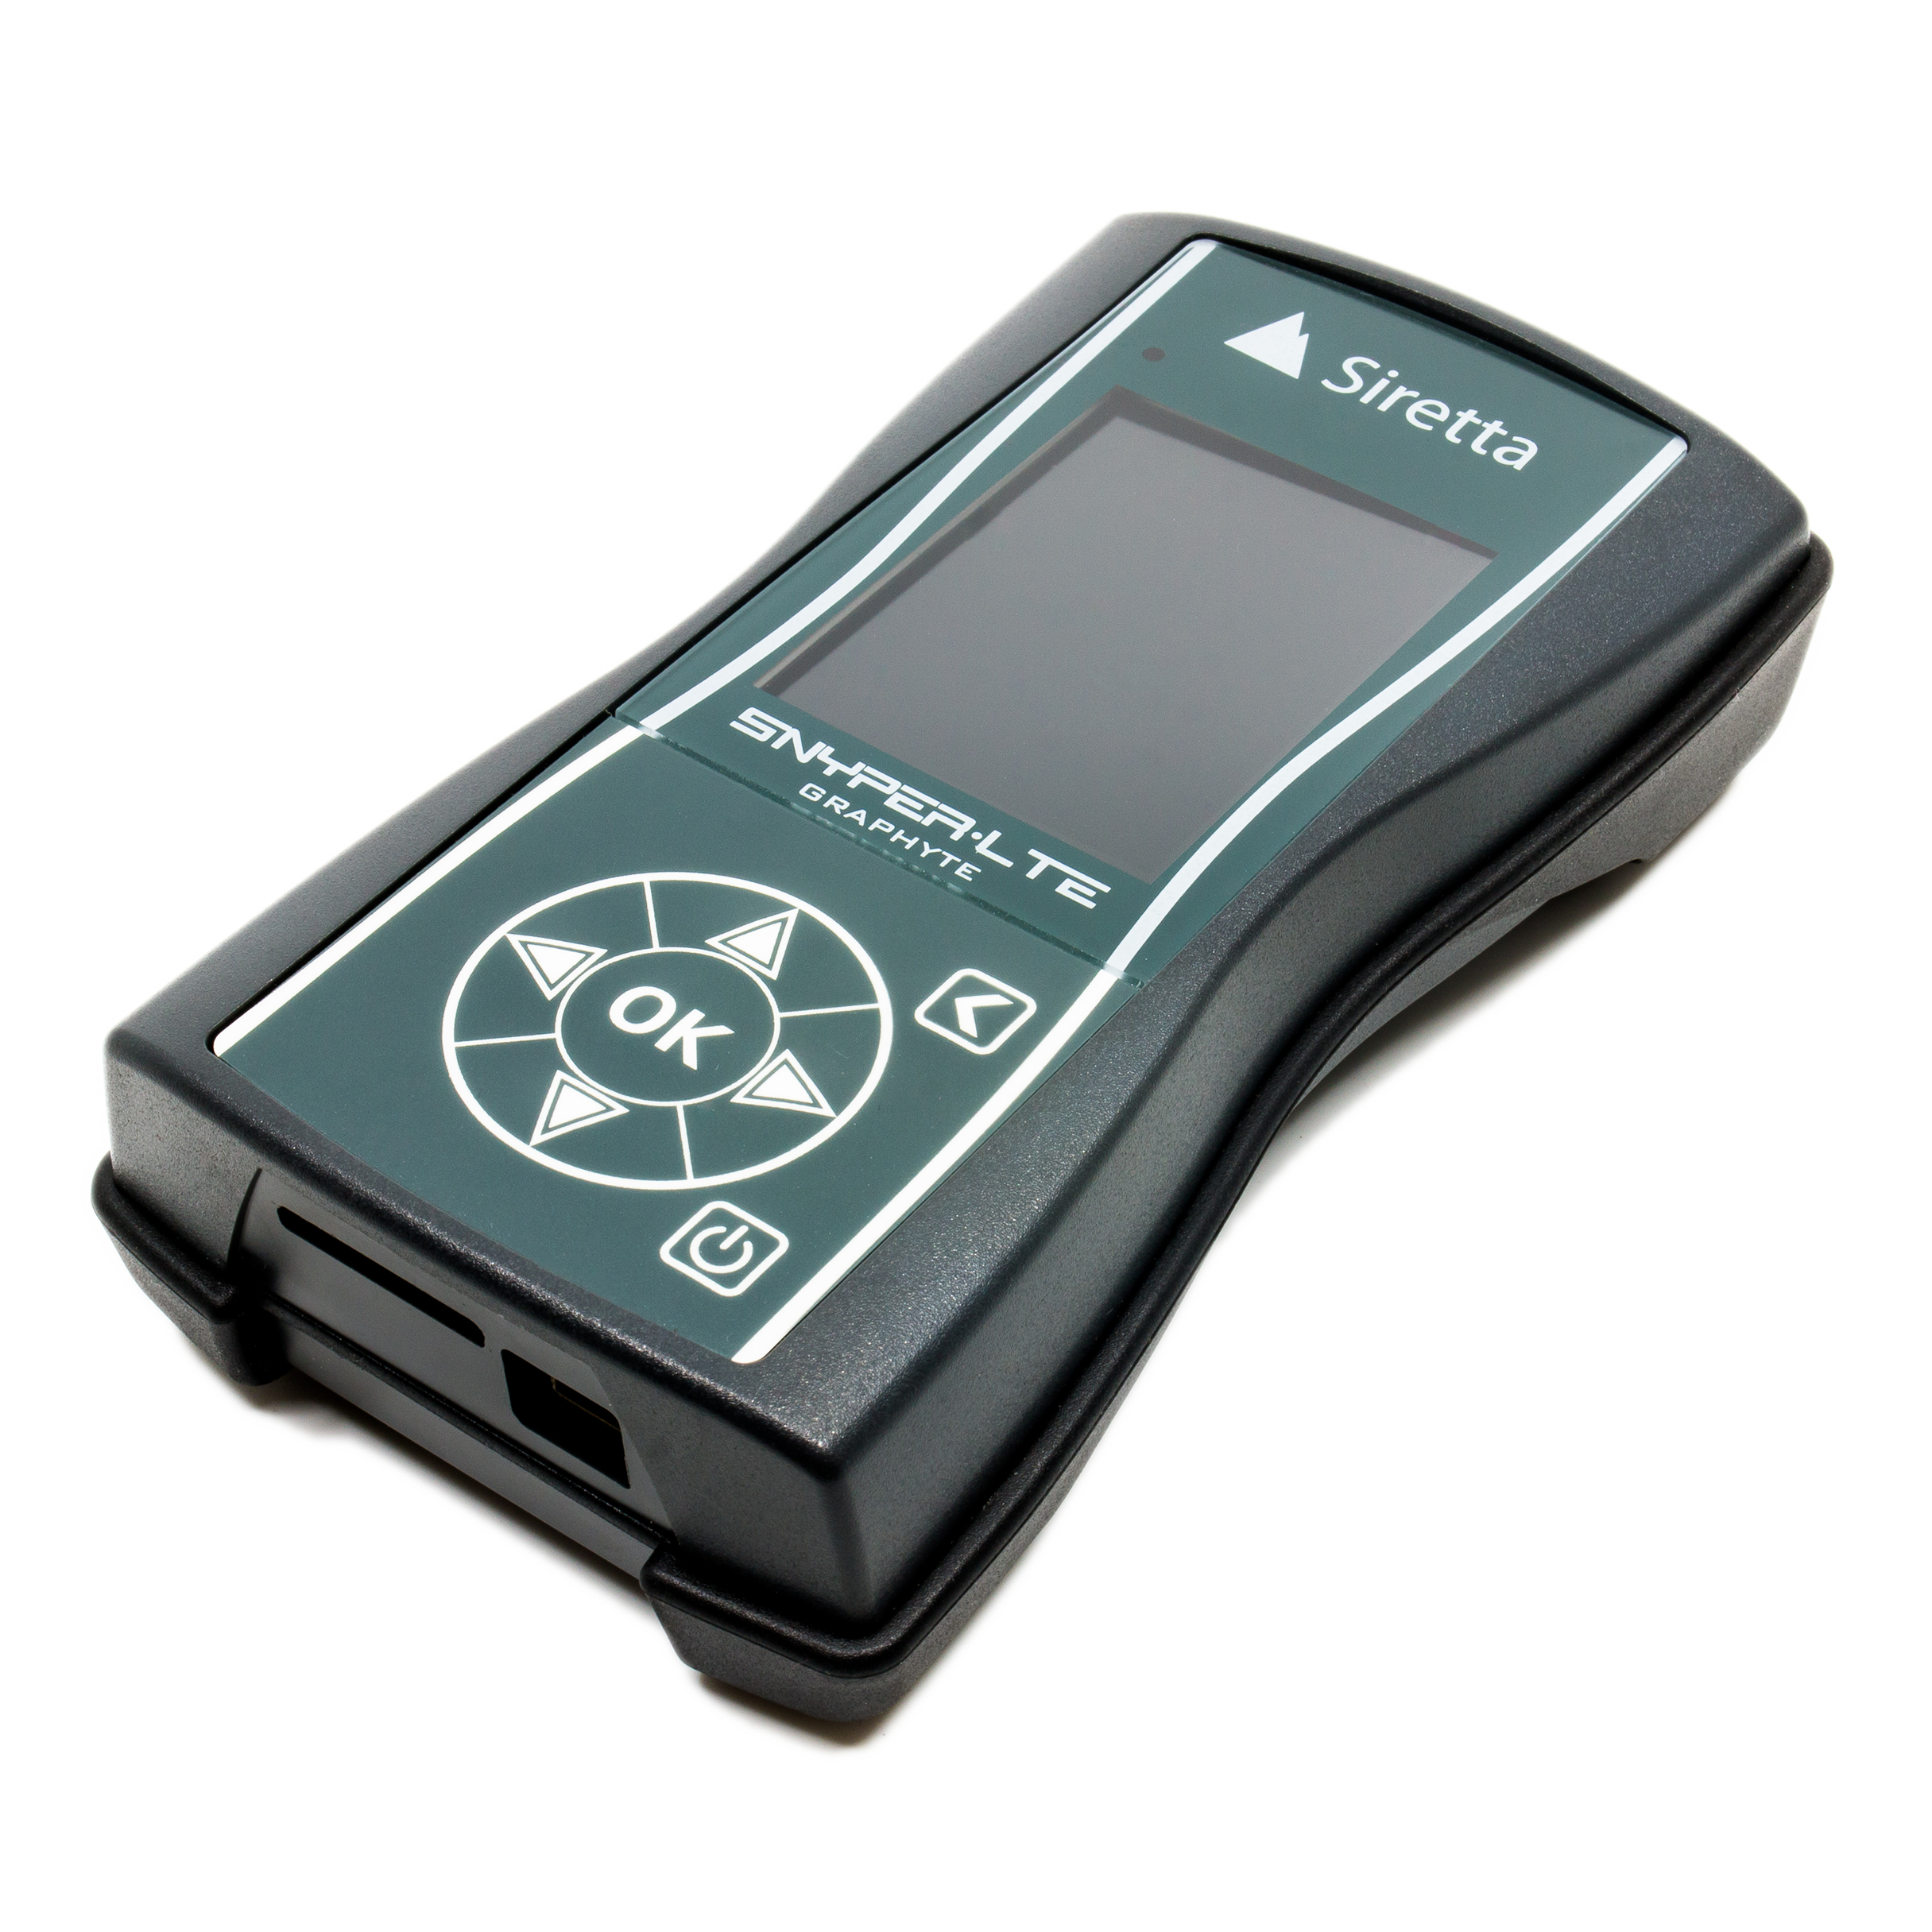 The SNYPER-LTE Graphyte is a high performance, multi-language network signal analyser and cellular signal logger, dedicated to surveying and logging the 4G/LTE (EU), 3G/UMTS & 2G/GSM networks.